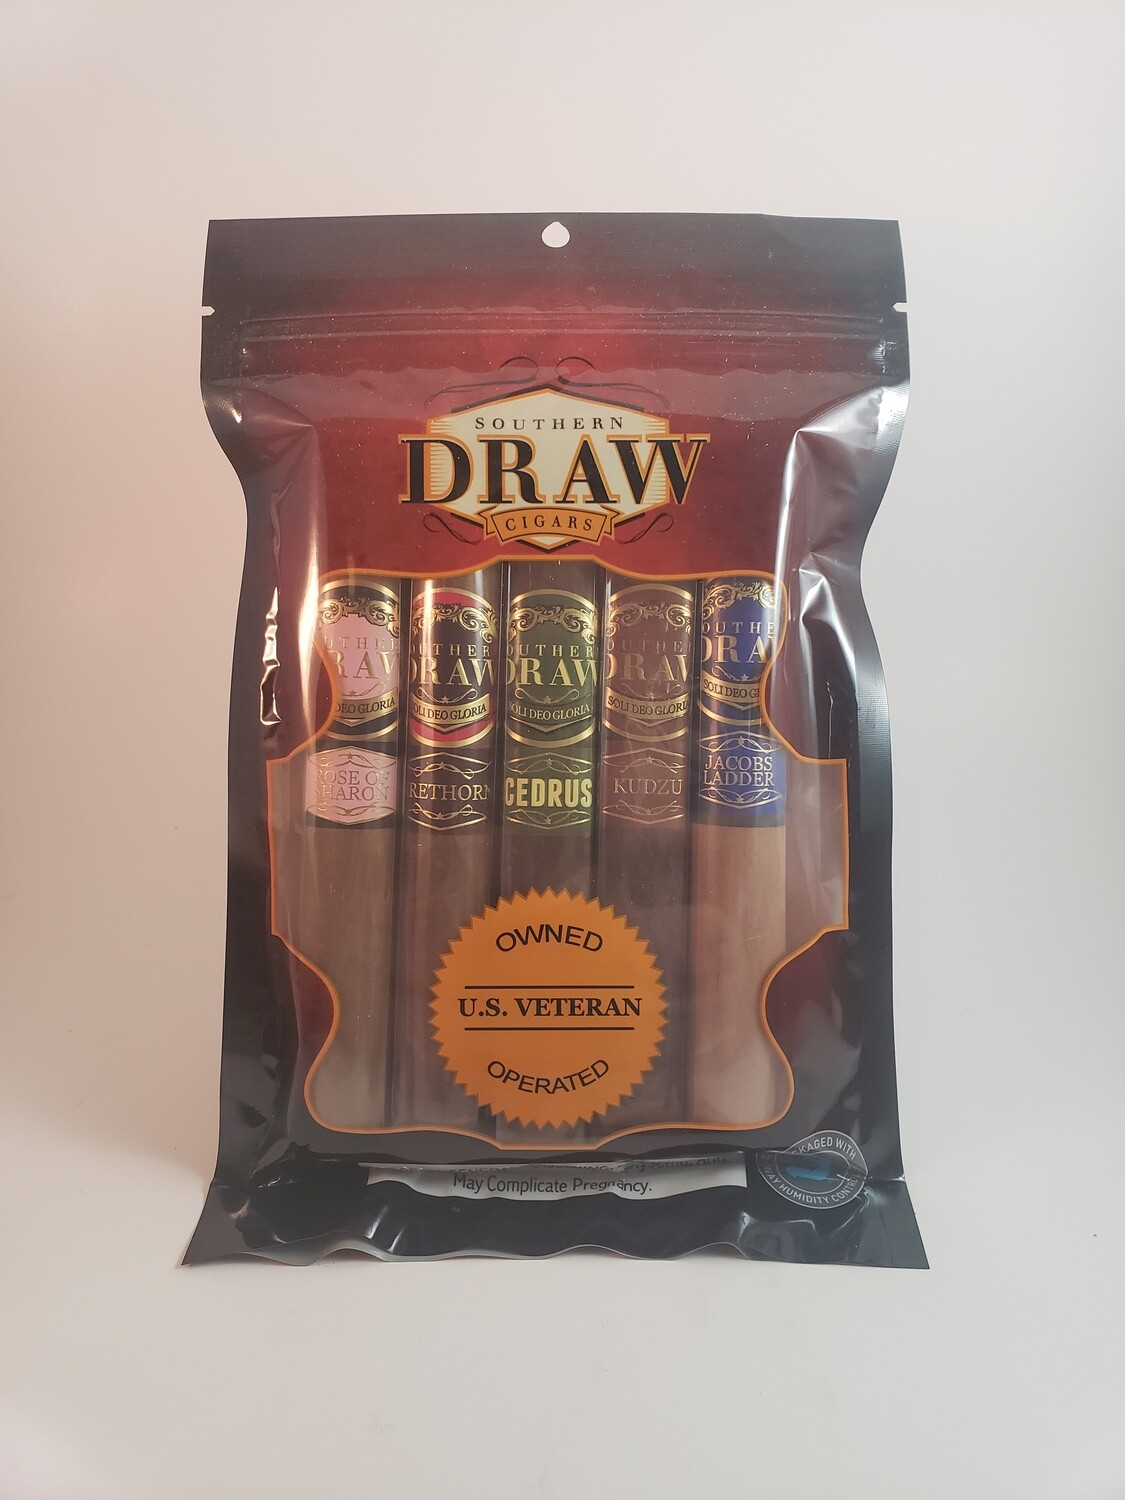 Southern Draw Drawpak Rose/FT/Cedrus/Kudzu/Jacobs Robusto 5ct